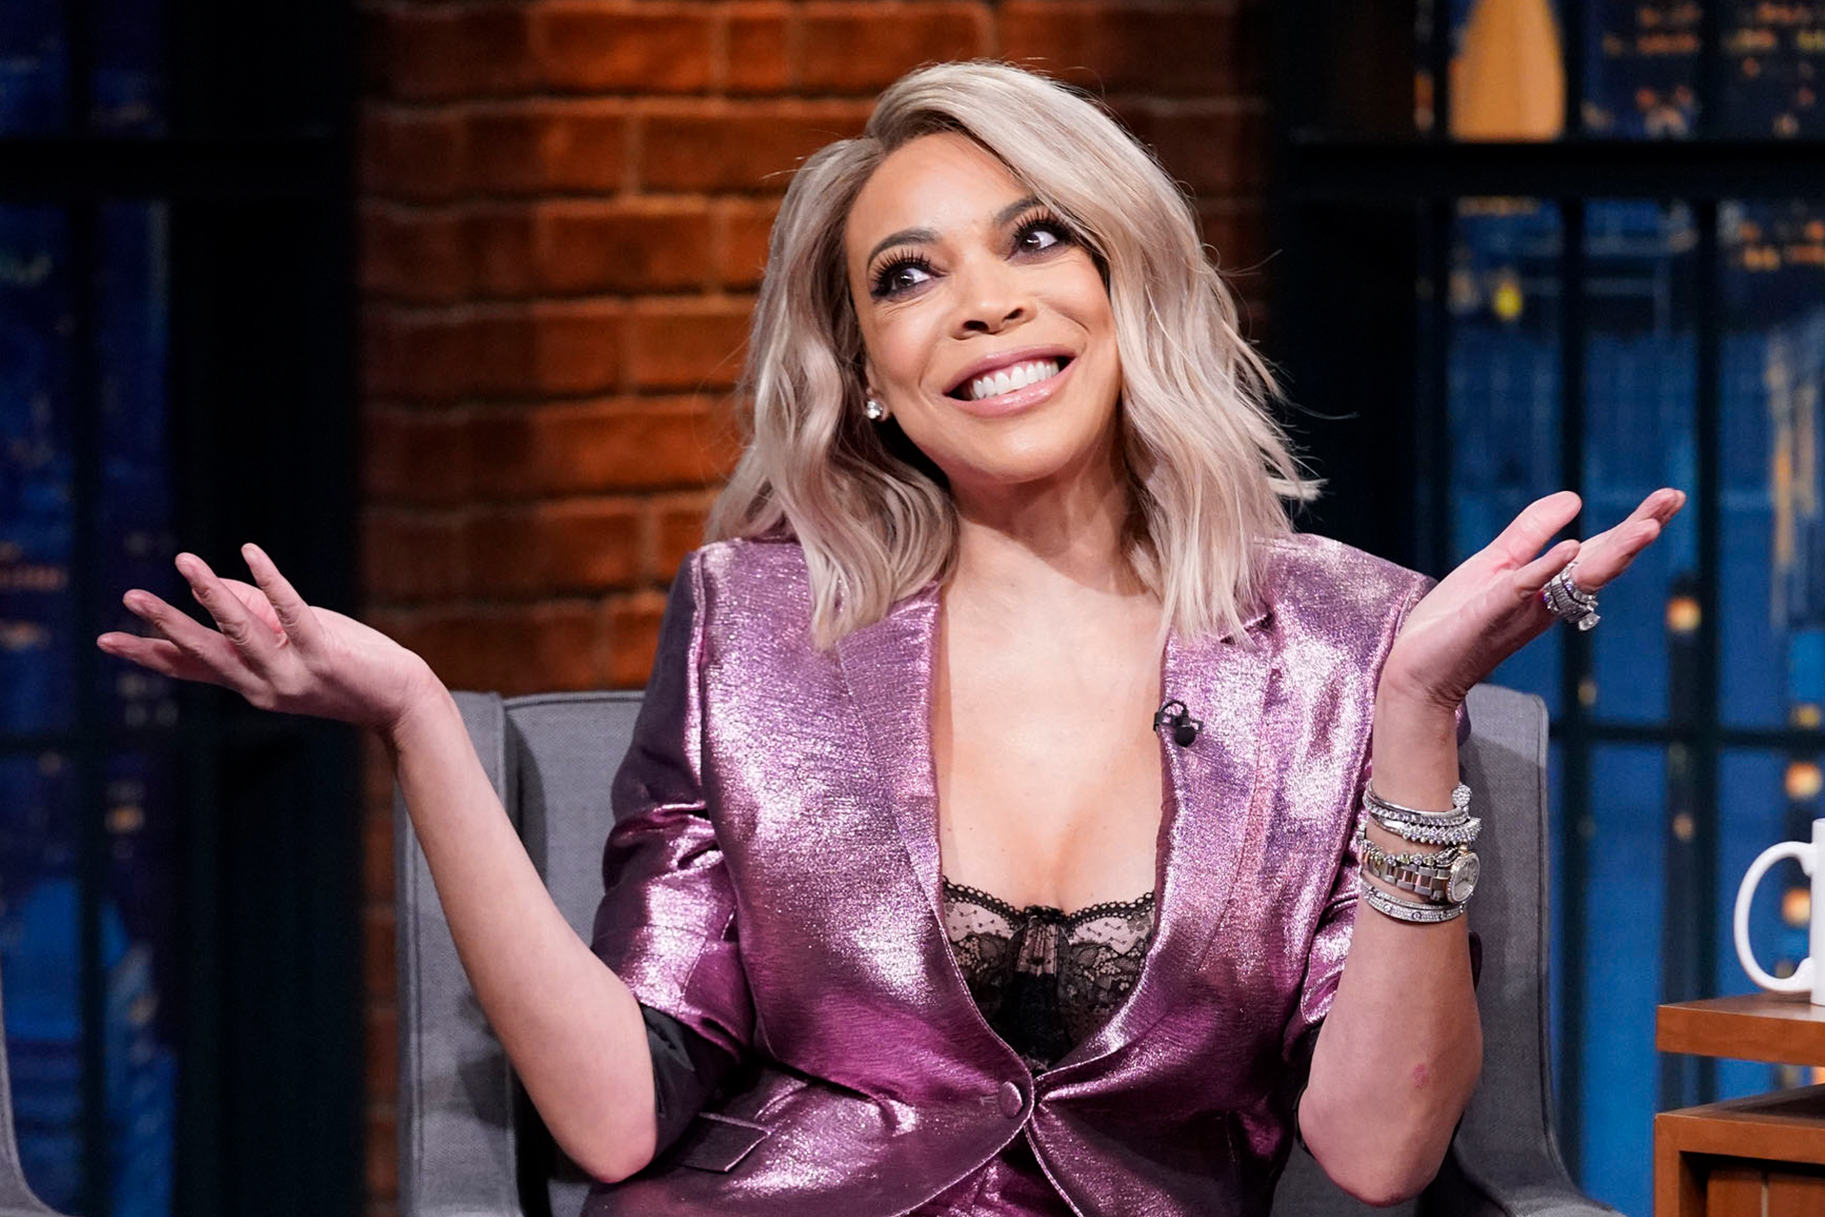 Wendy Williams Supports The LGBTQ Community At L'HOMMAGE Presented By Fierce - Fans Are Praising Her Look